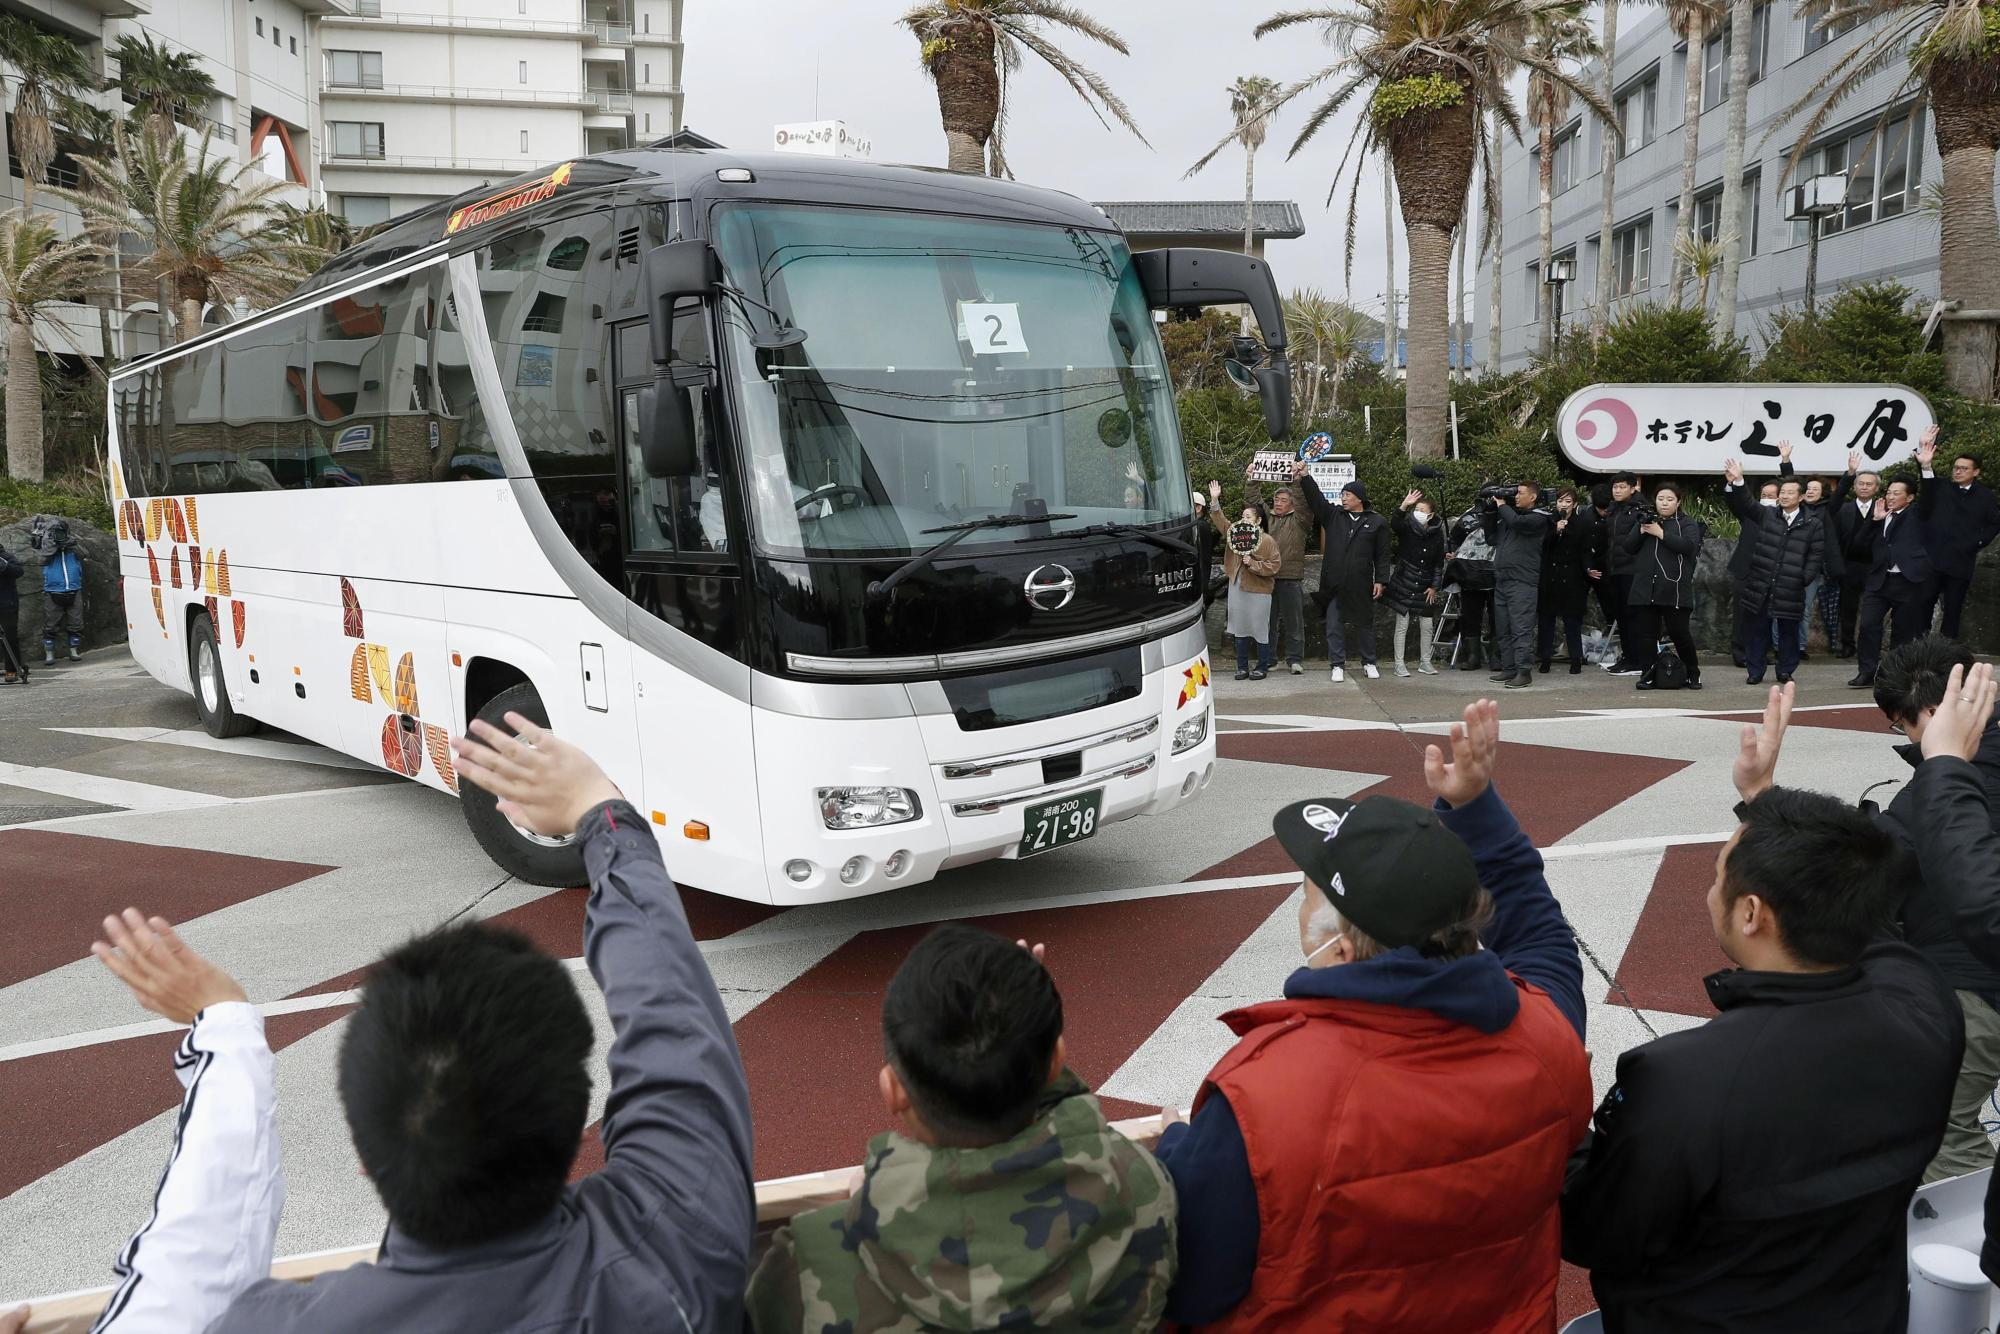 People see off a bus carrying evacuees from Wuhan, the epicenter of the new coronavirus outbreak in China, as it leaves a hotel in Katsuura, Chiba Prefecture, near Tokyo, on Thursday. | KYODO